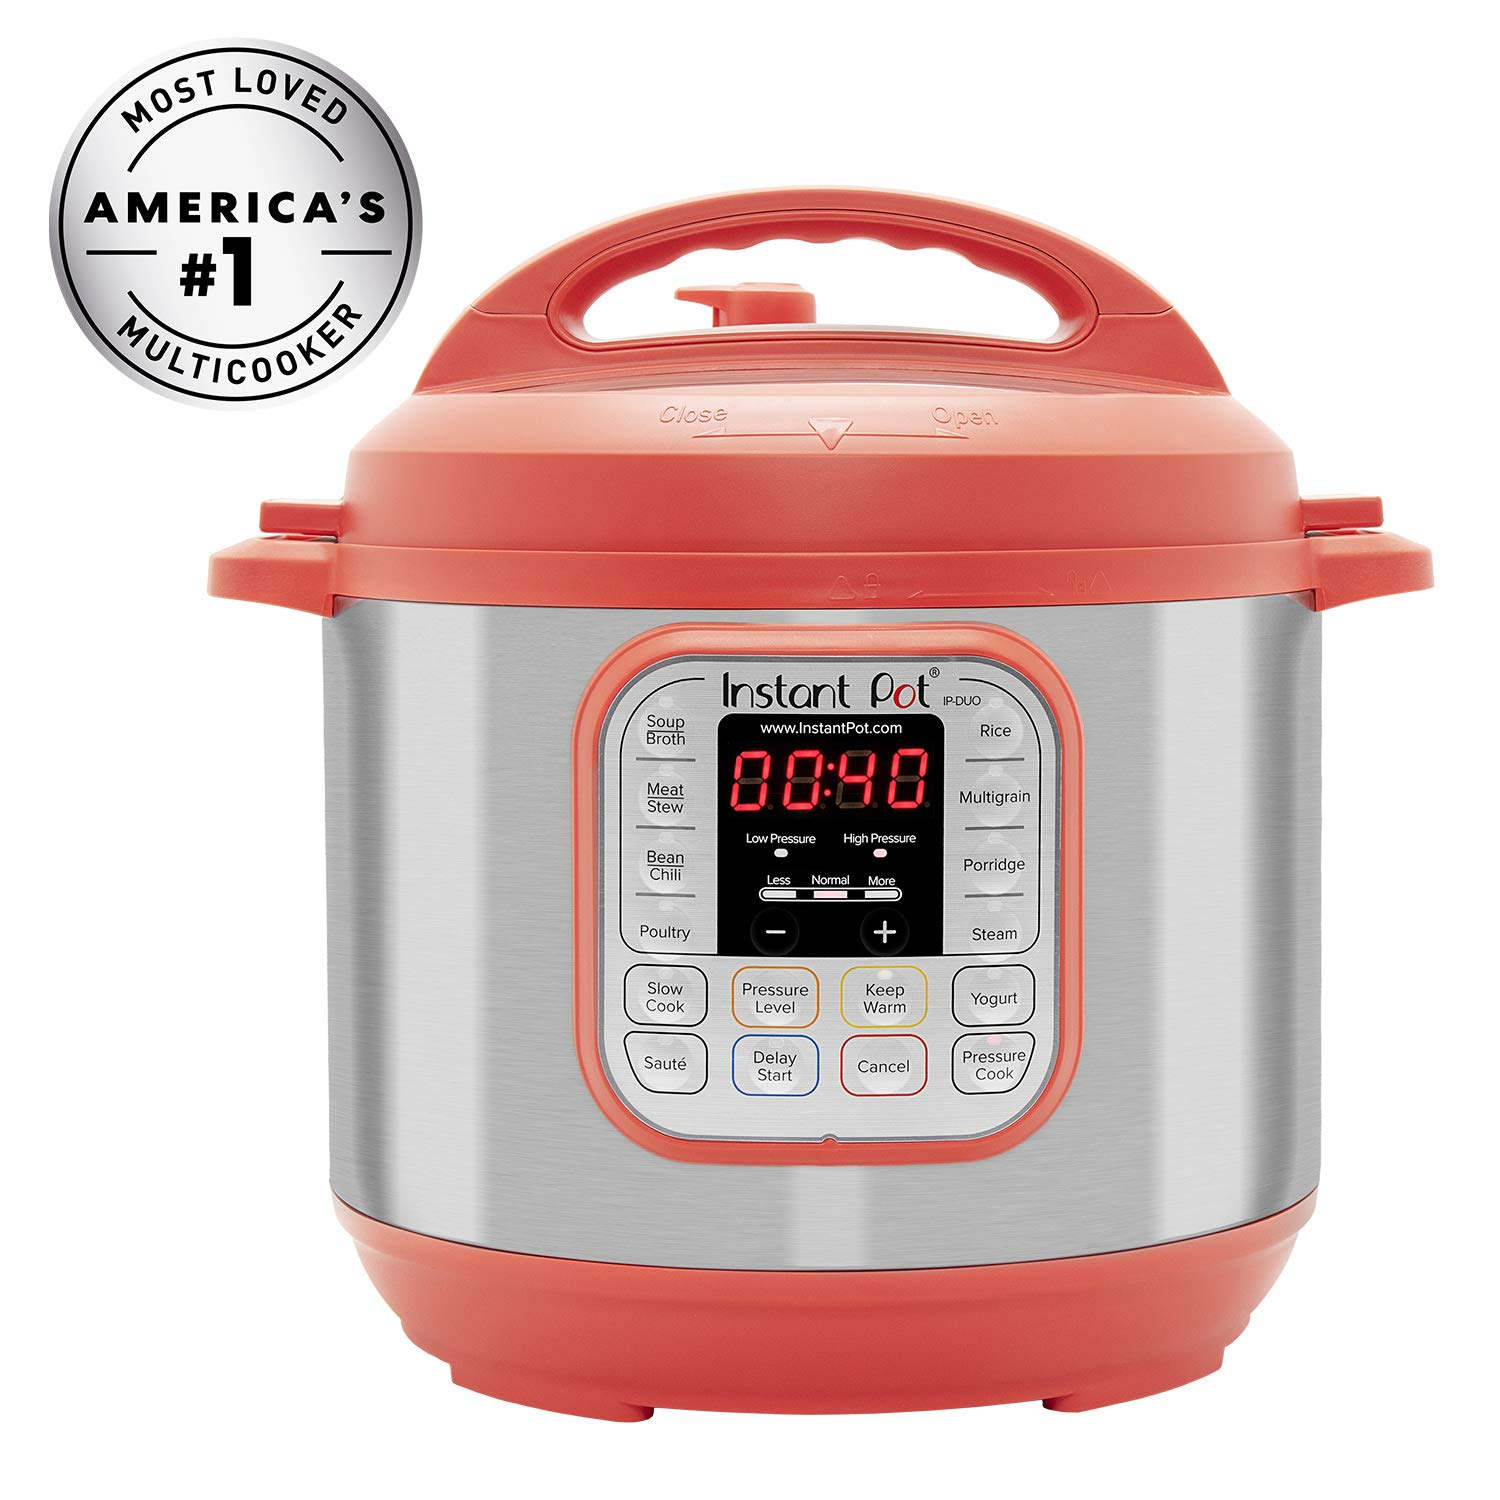 Instant Pot DUO RED Multi-Use Cooker - 6Qt   via Amazon   List Price: $100    Today's Price: $60